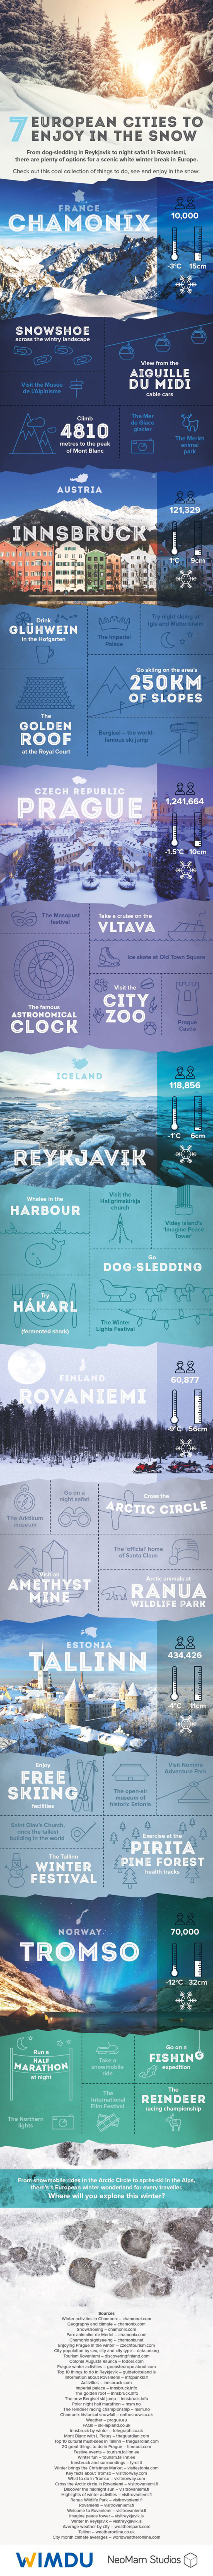 7 European Cities to Enjoy in the Snow Infographic